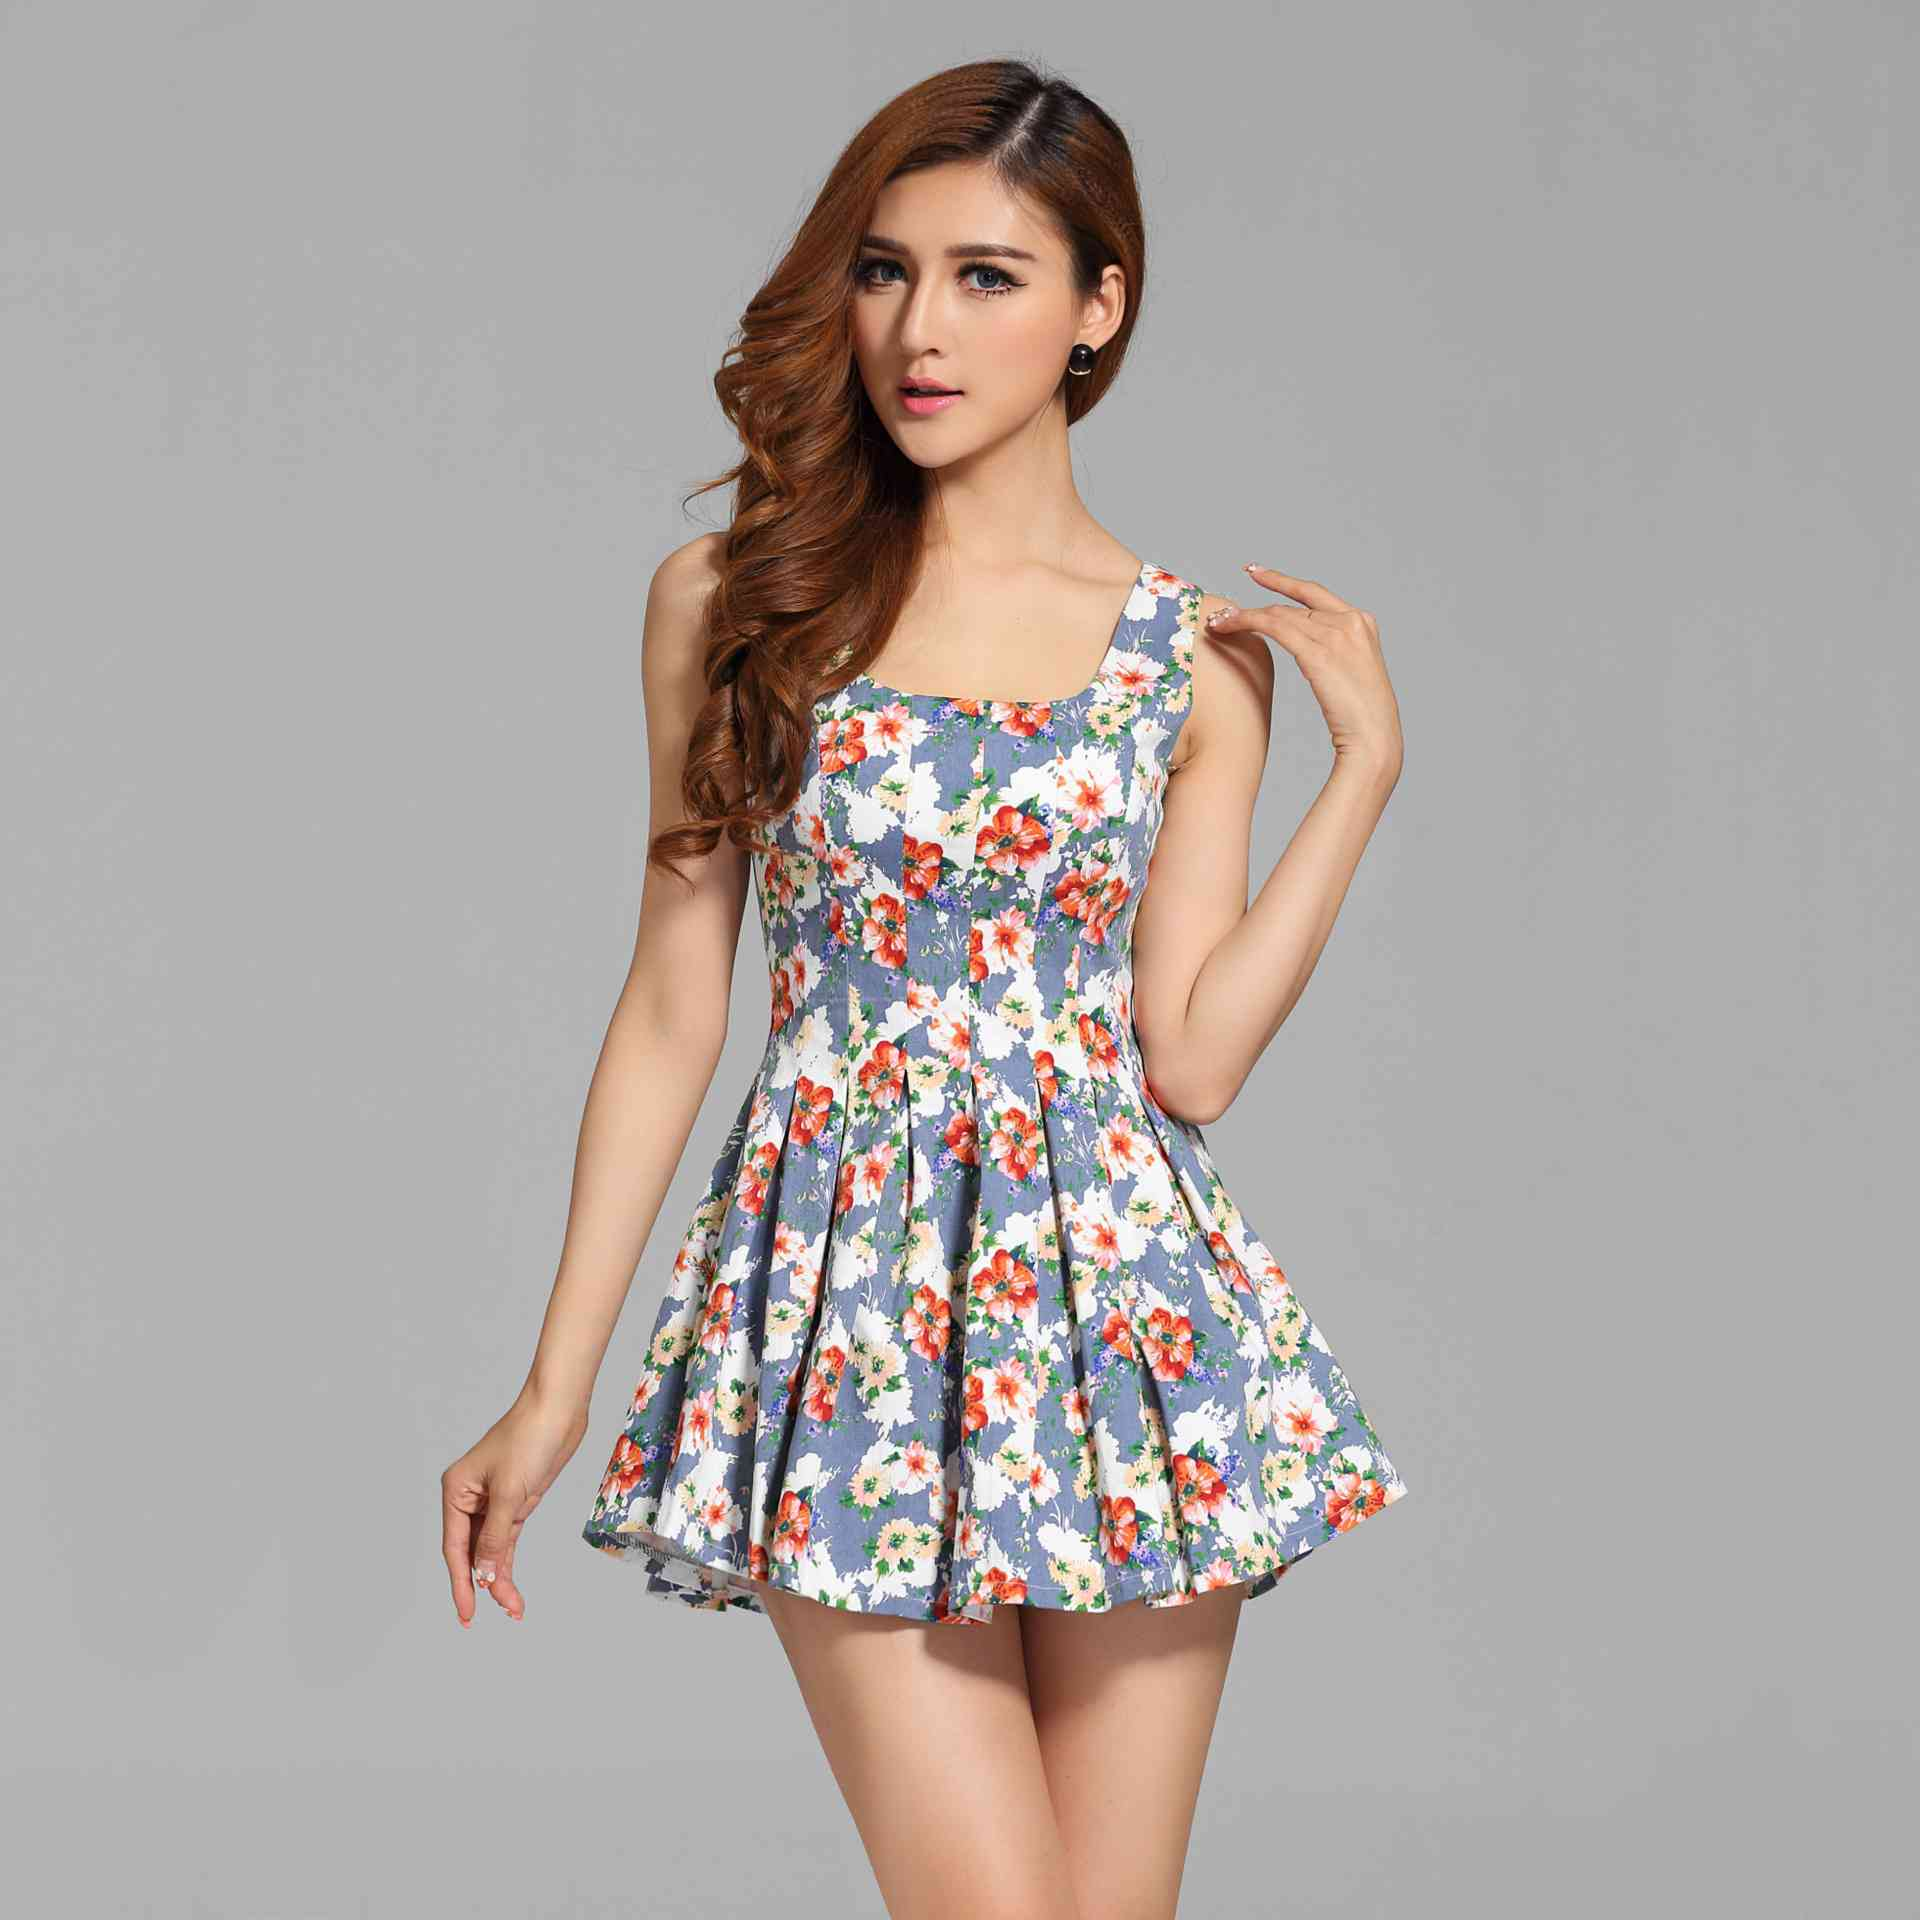 551271039a3 Free Shipping new style womens Western dresses sundresses for summer  sleeveless overalls elastic pleated of self 1432334056-in Dresses from Women s  Clothing ...